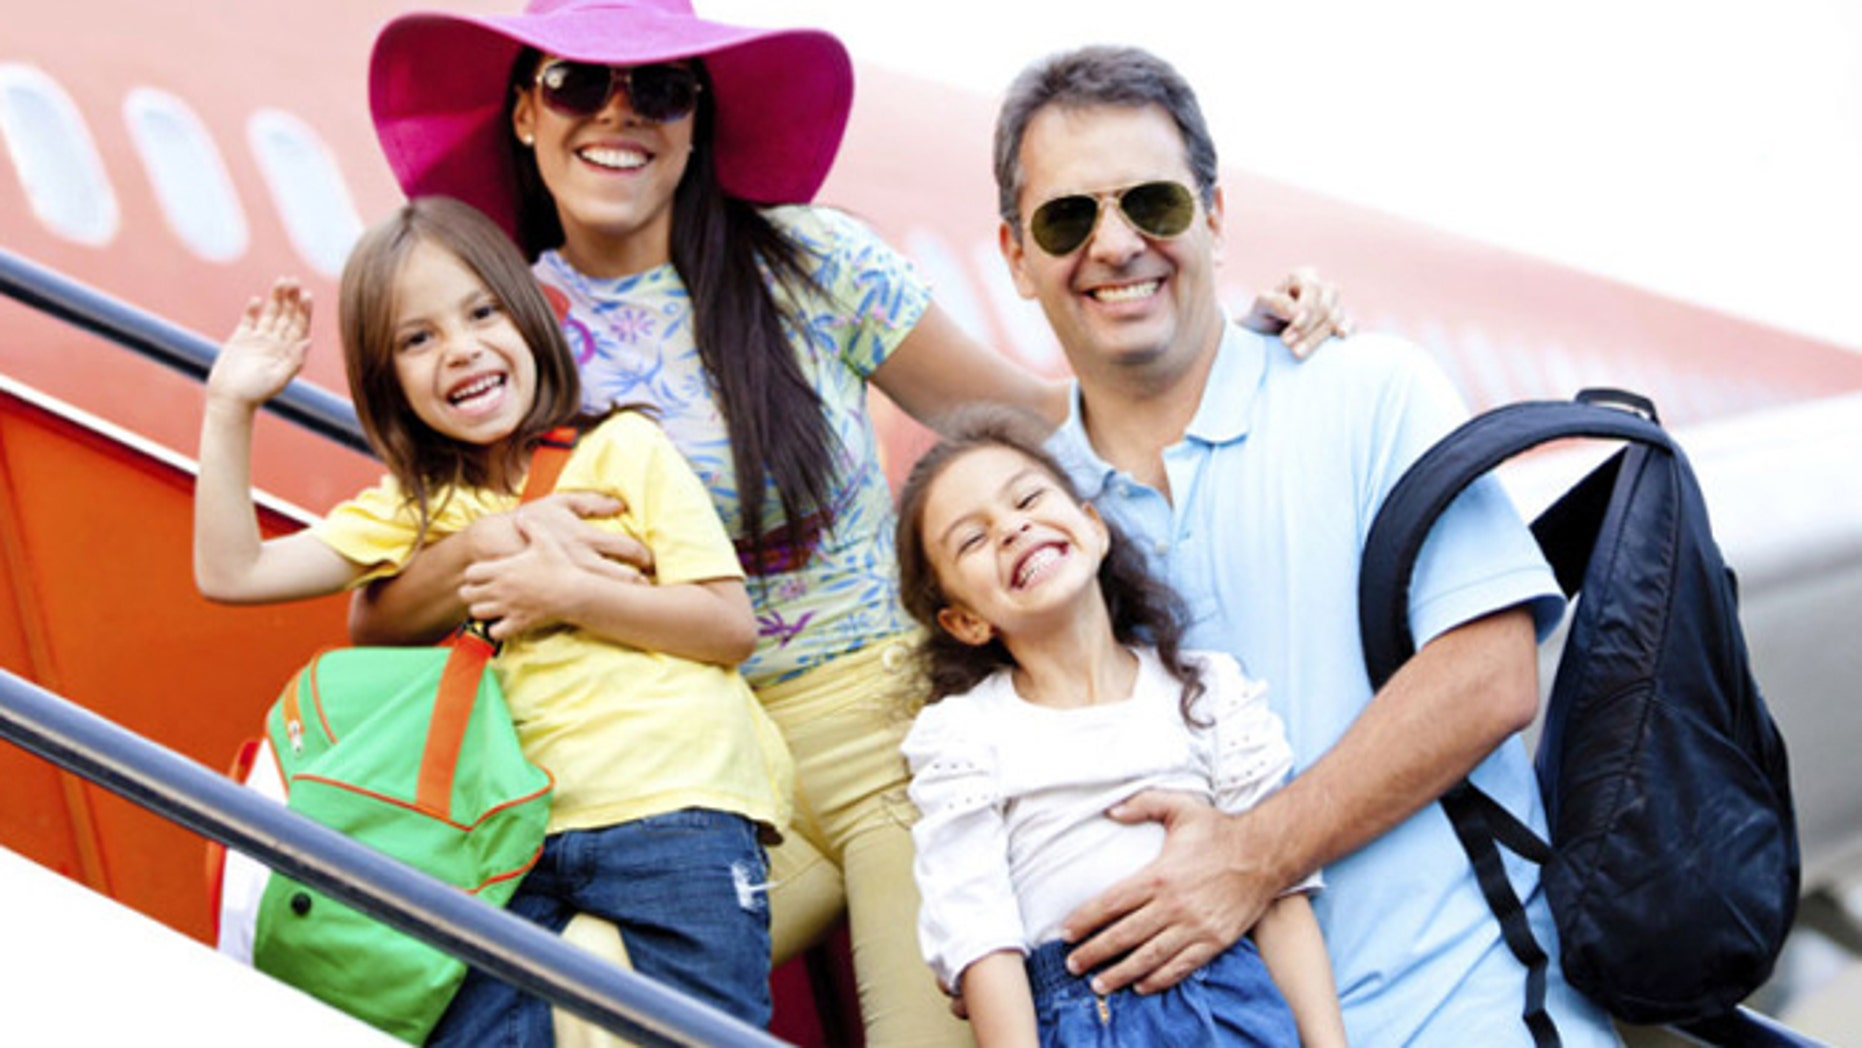 Whether it is all-inclusive resorts or cruises, there are great choices for families traveling together.